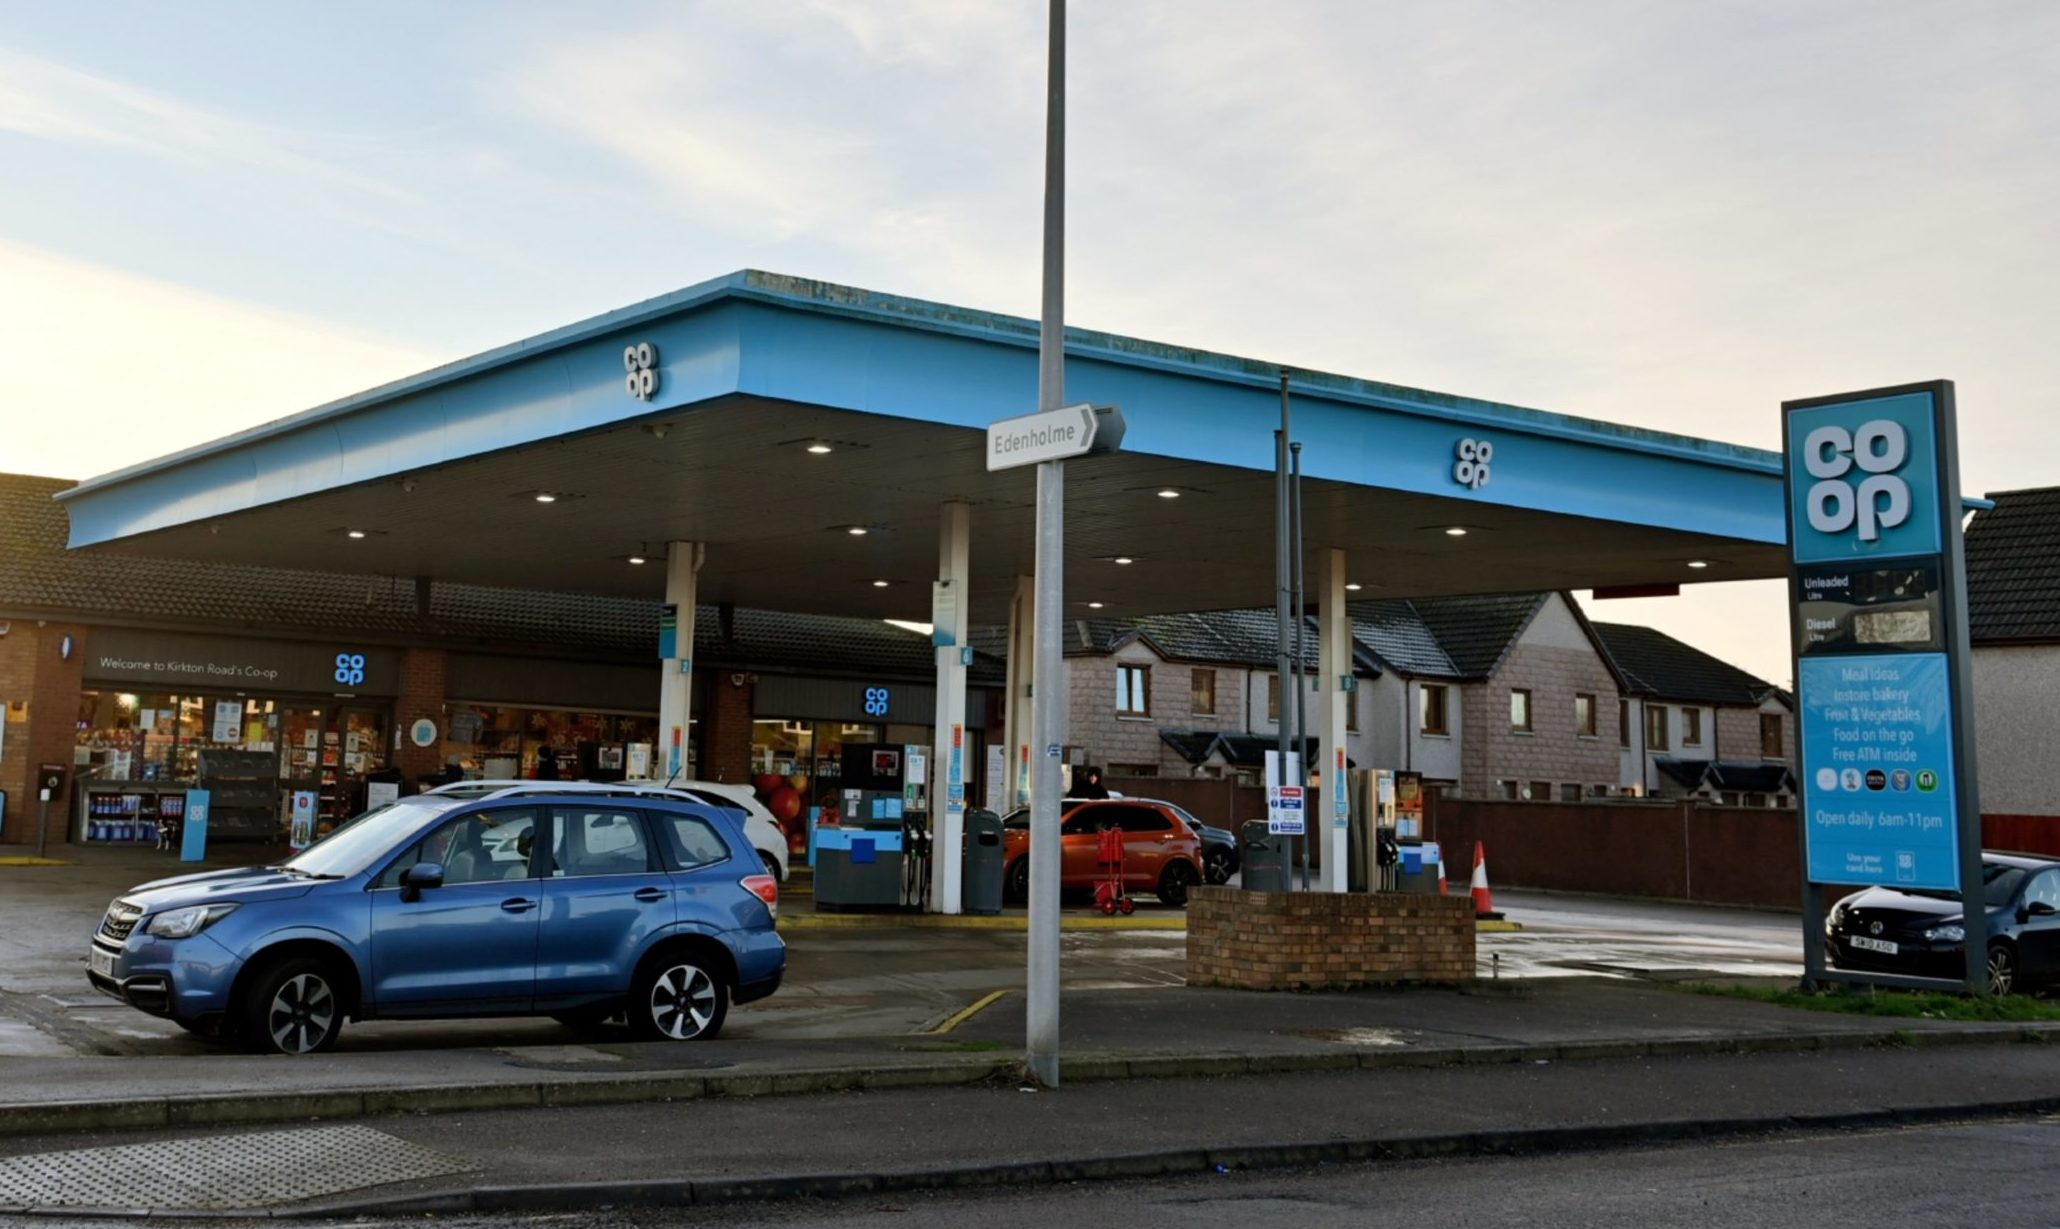 The Kirkton Road Co-Op petrol station currently houses Stonehaven's only Post Office.